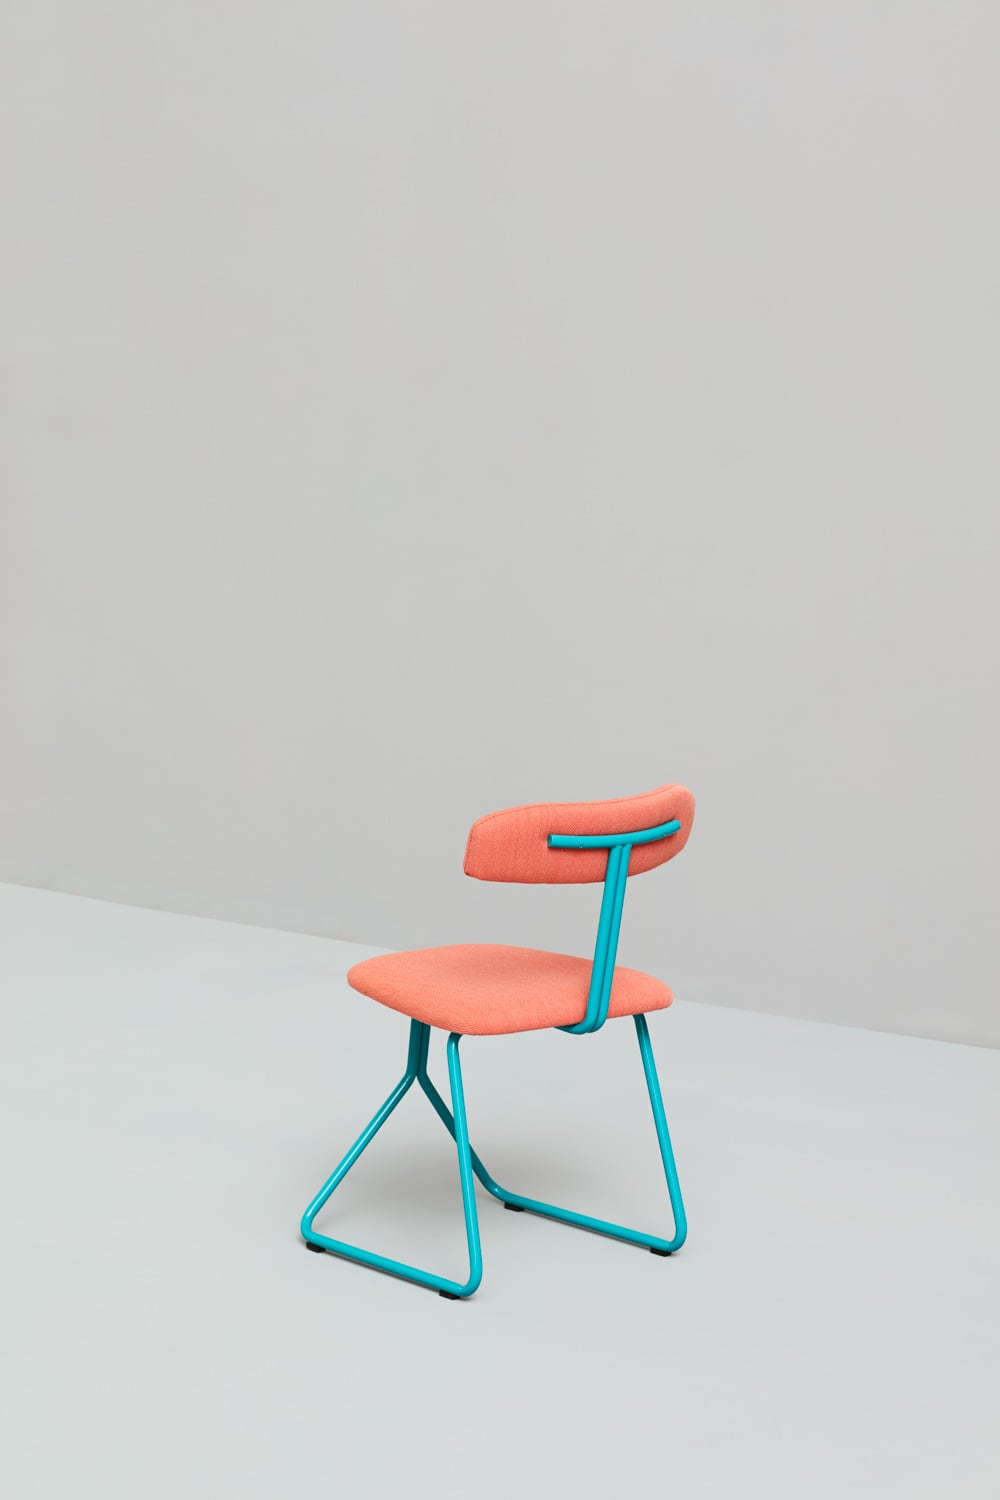 rider-chair-hospitality-project-interior-design